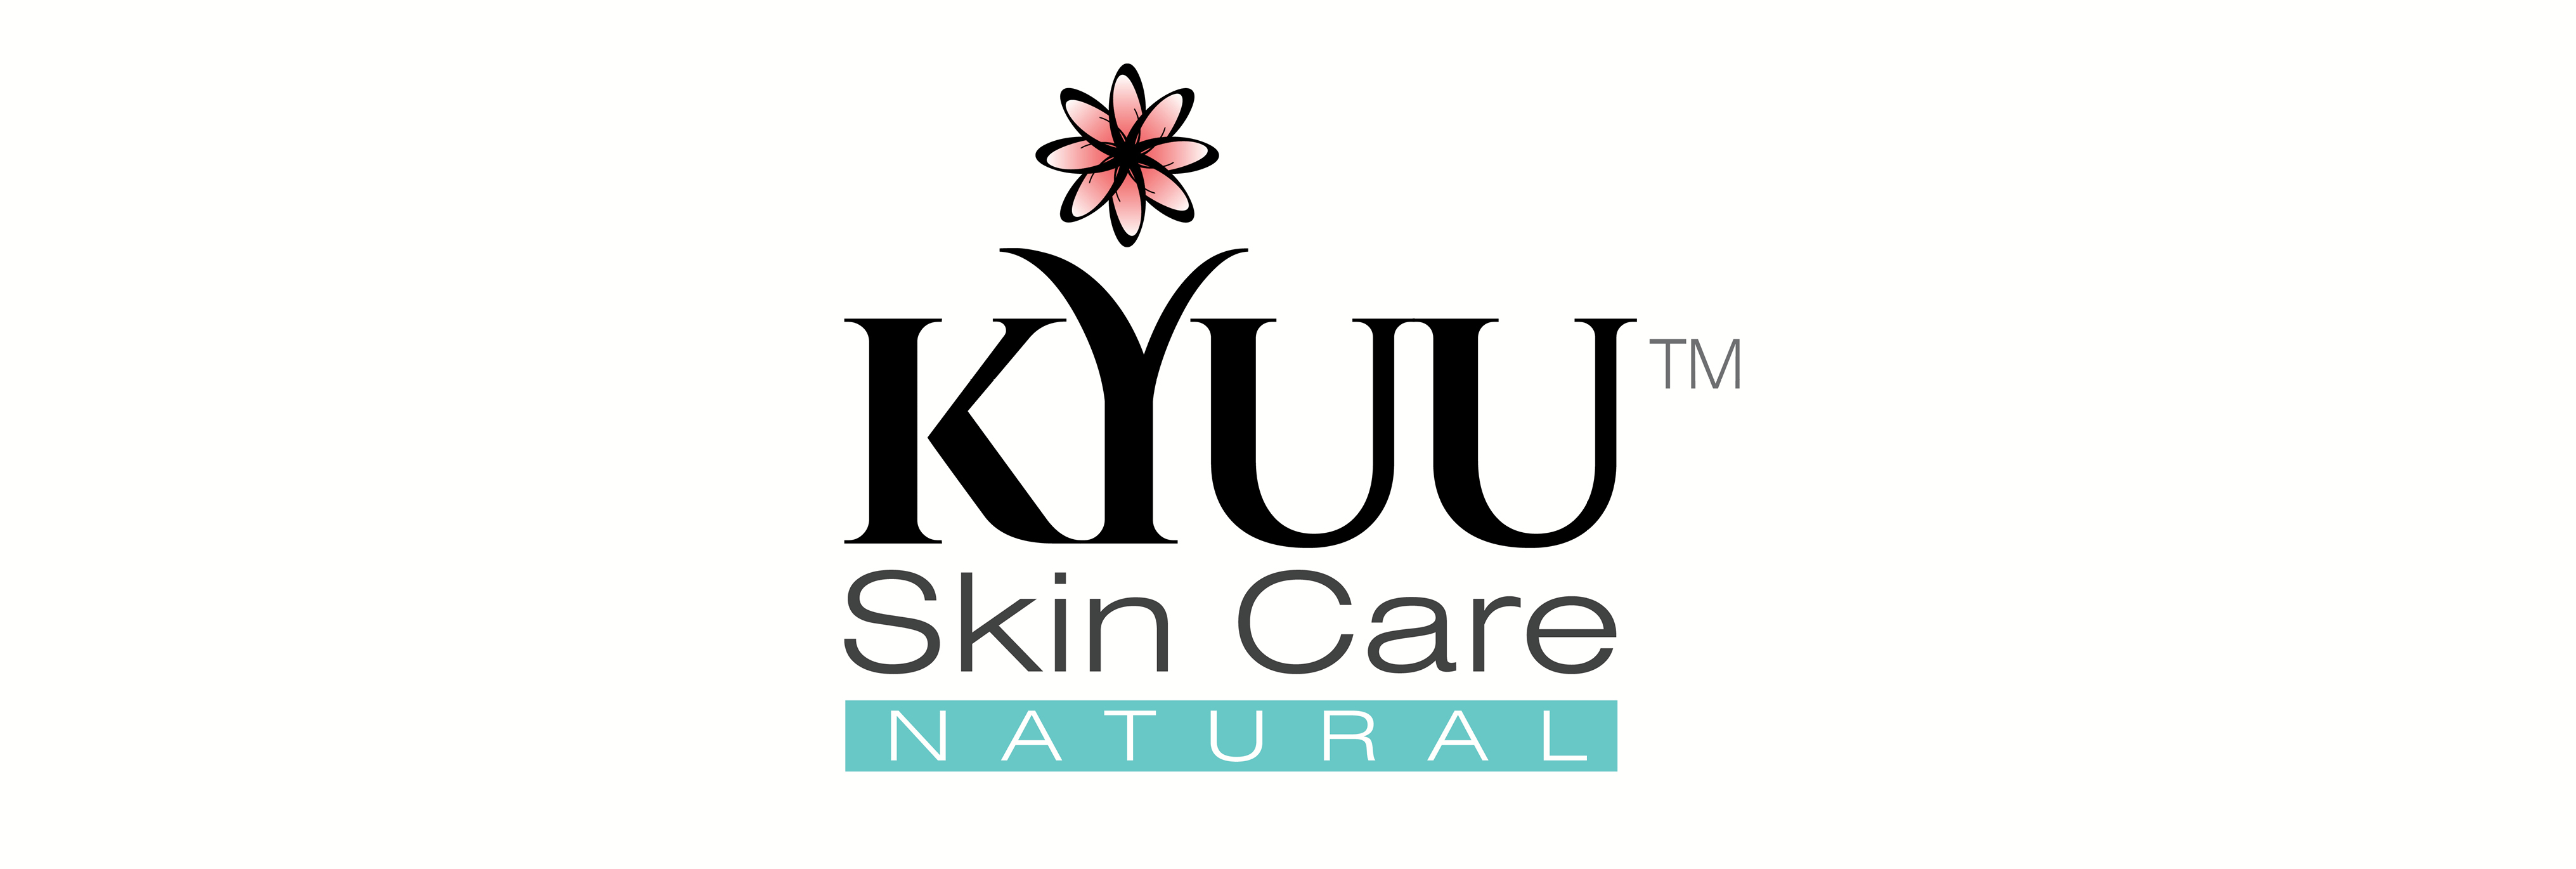 Kyuu Skin Care | Odd Poppy Advertising Agency | Pretoria | Clients